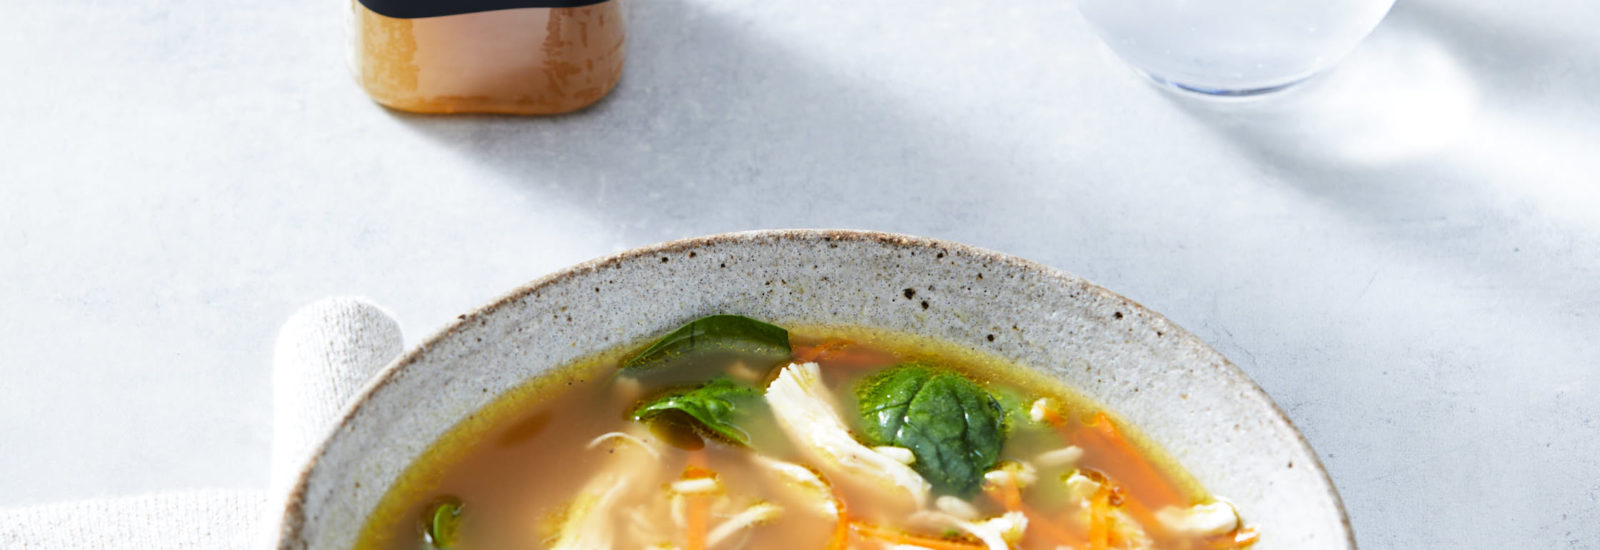 BoneBroth_BrownRiceChickenAndSpinachSoup02